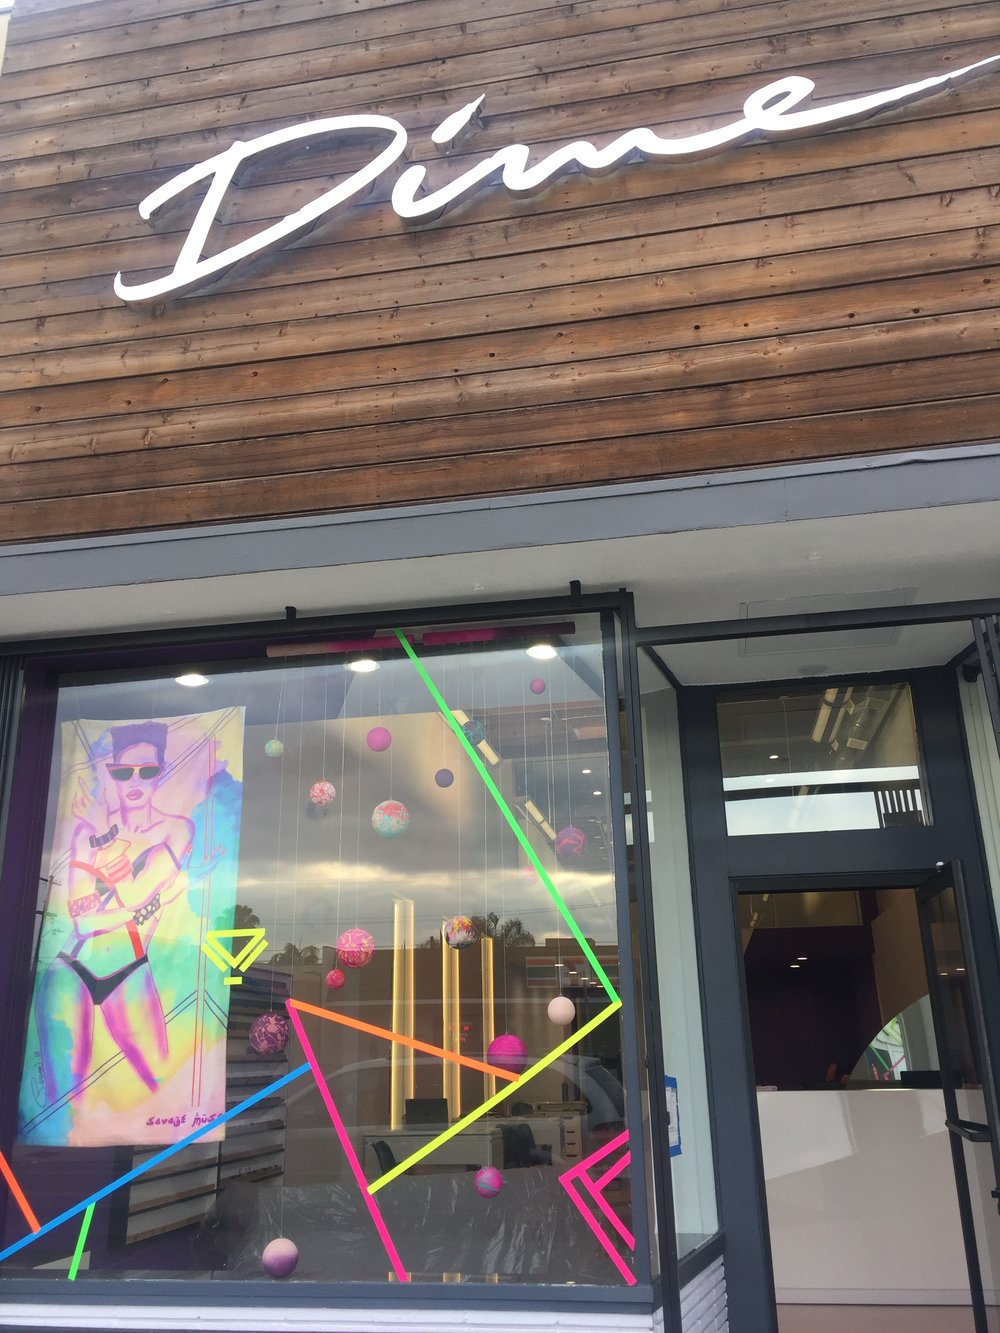 Window art installation designed by Parisa Parnian for the SAVAGE MUSE X DIME NAILS collaboration.